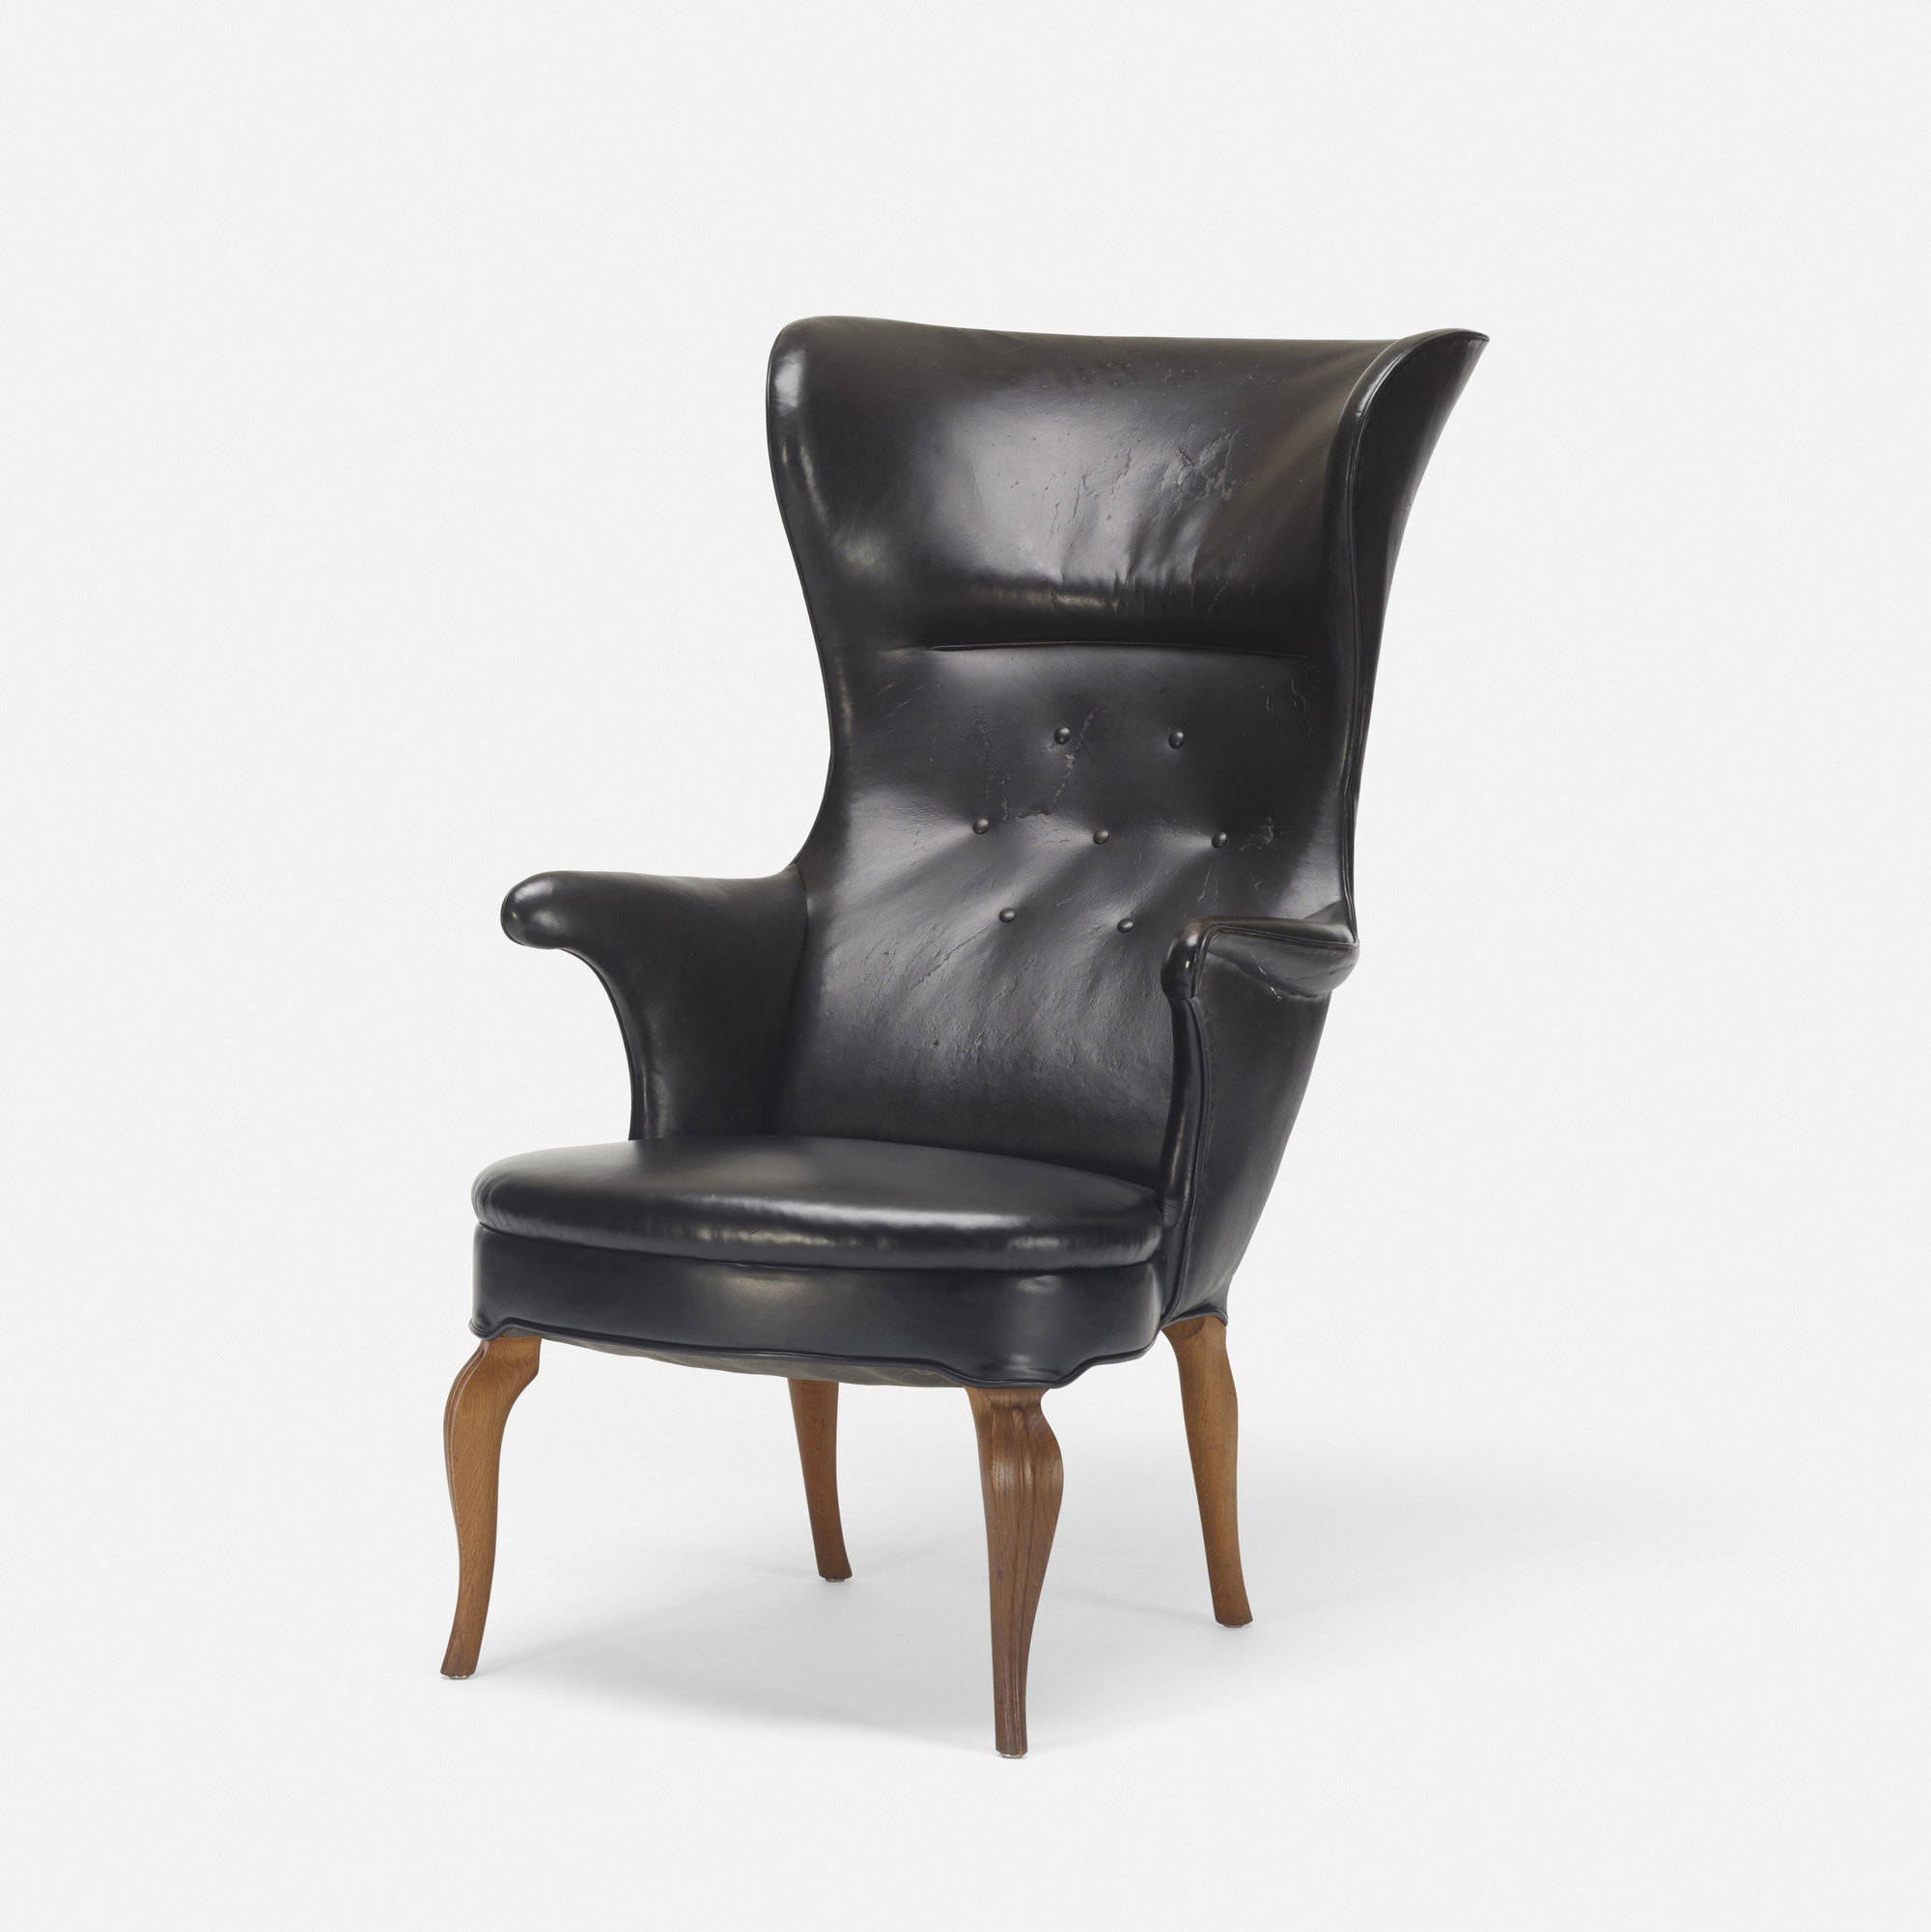 154: Frits Henningsen / Wingback armchair (2 of 3)